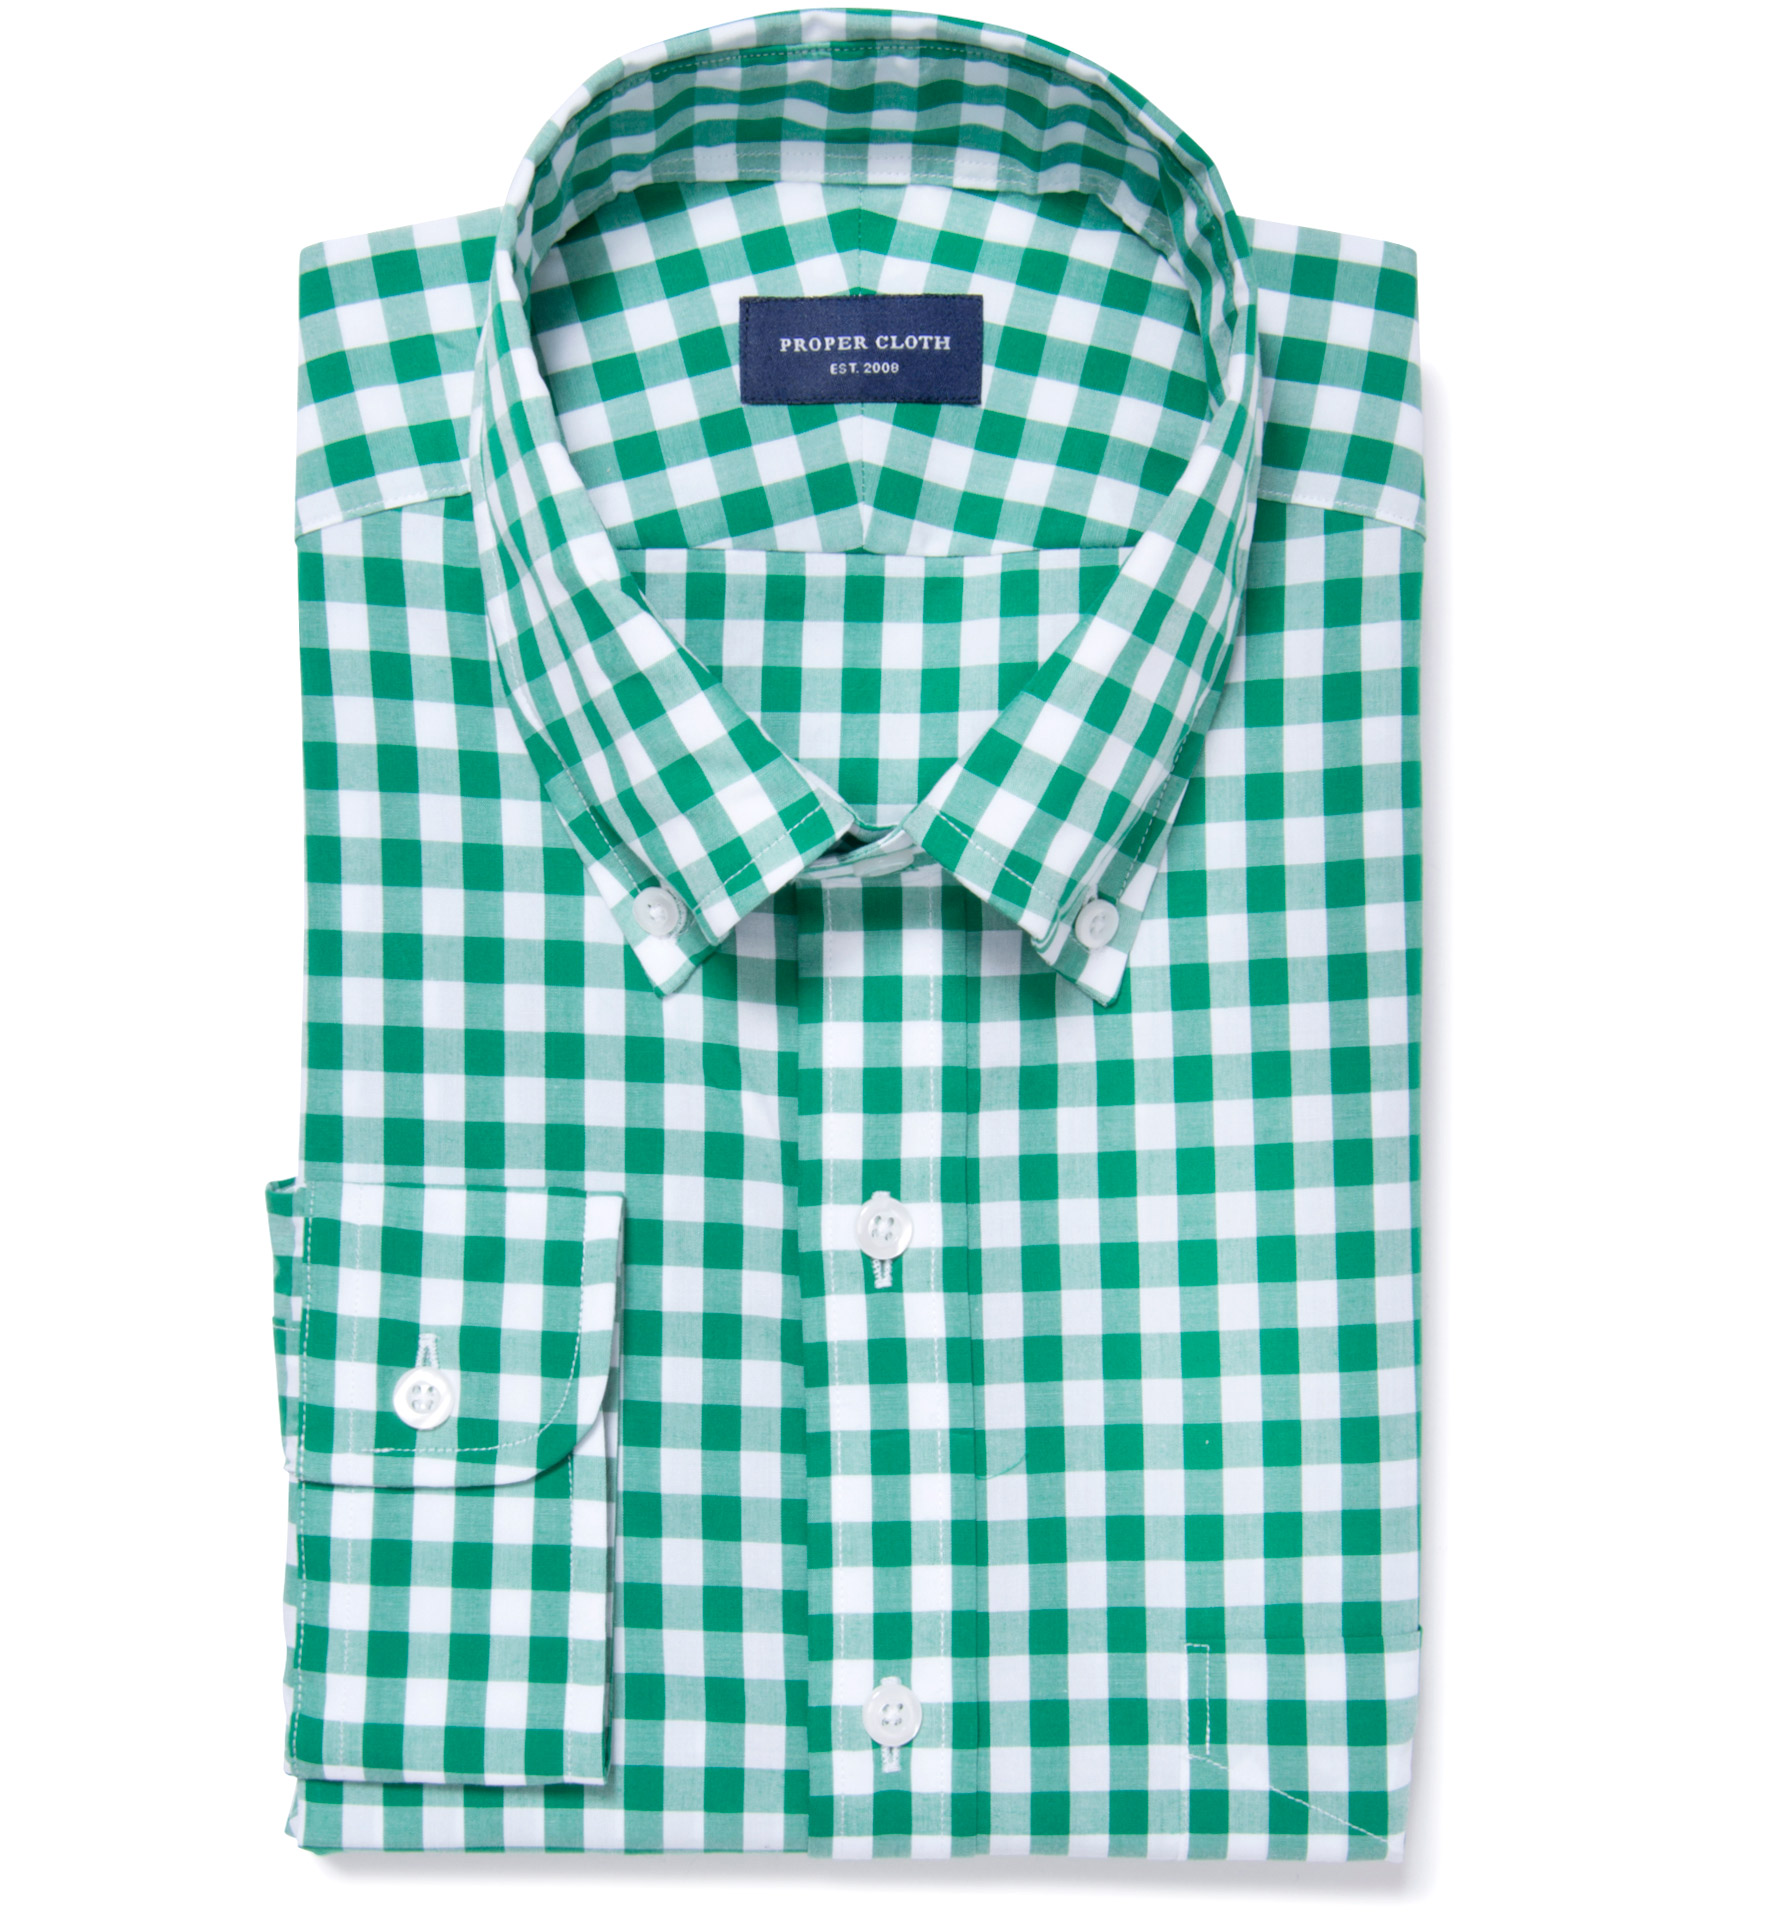 Green large gingham fitted shirt by proper cloth for Proper cloth custom shirt price